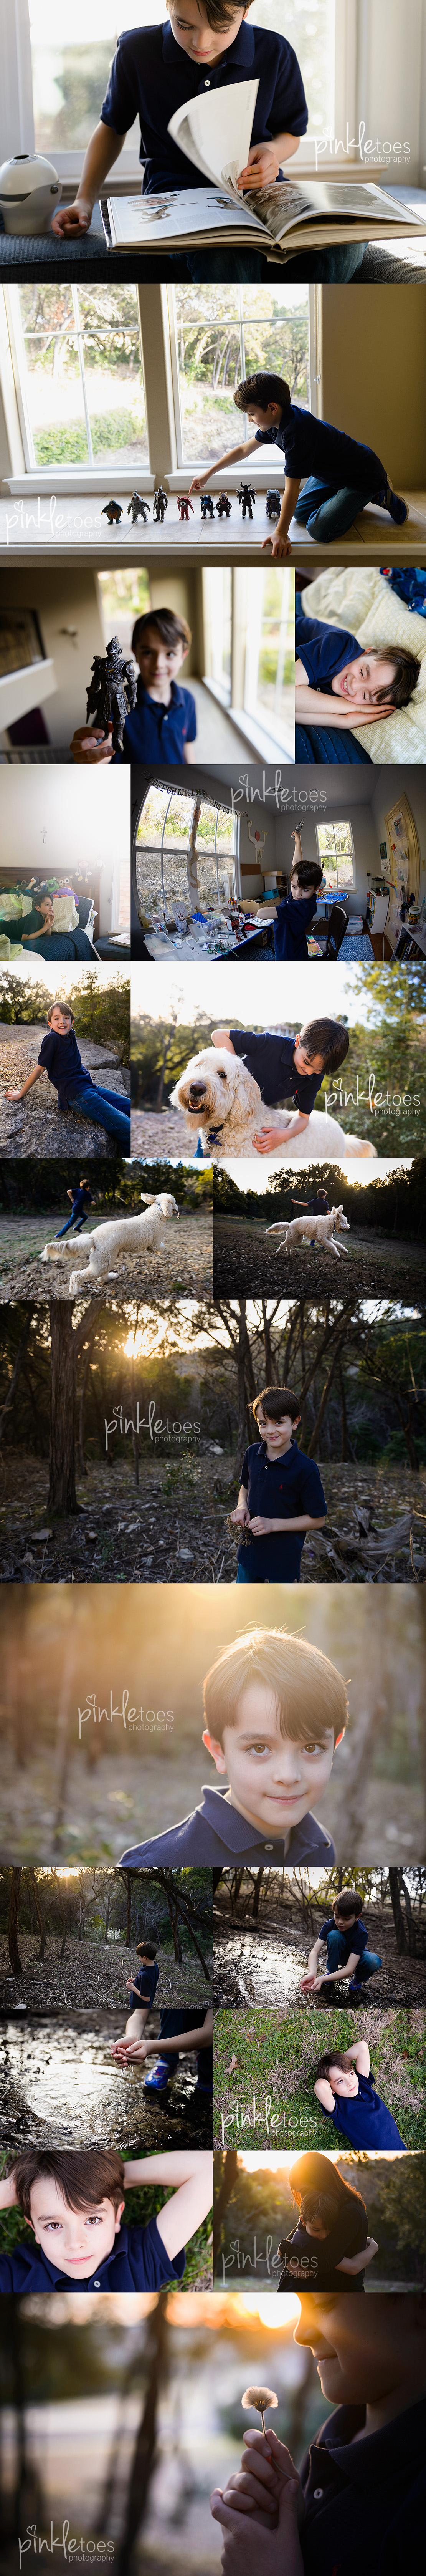 photo-session-austin-photographer-boy-scooter-dog-sunset-outdoors-creek-lifestyle-documentary-candid-photography